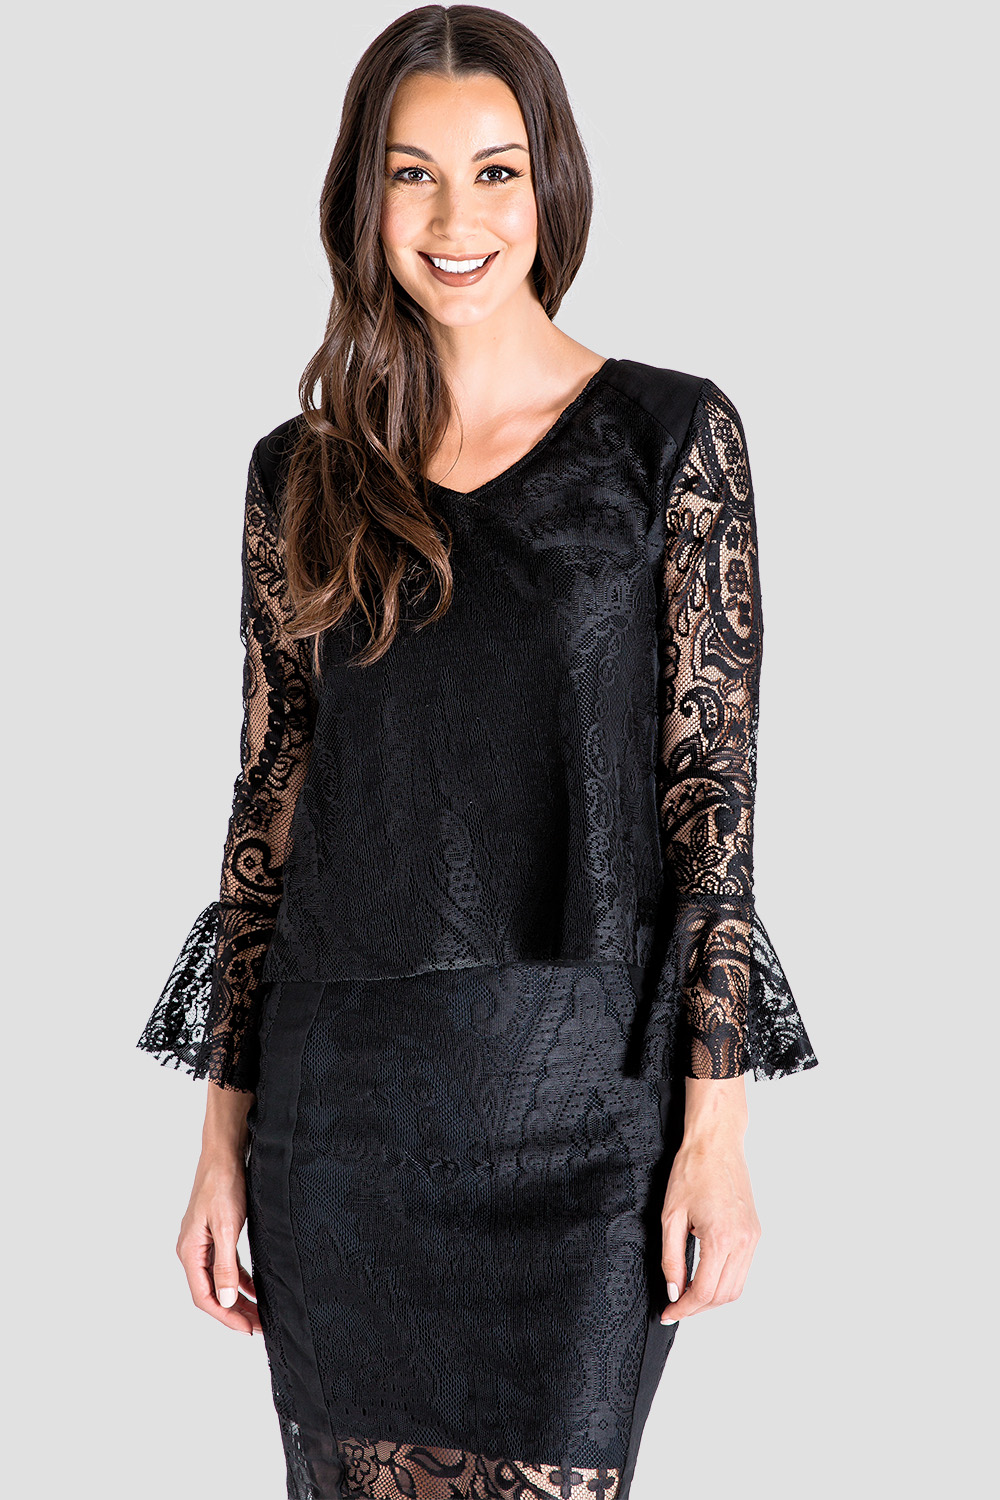 Women's Black Lace Flare Sleeve Top